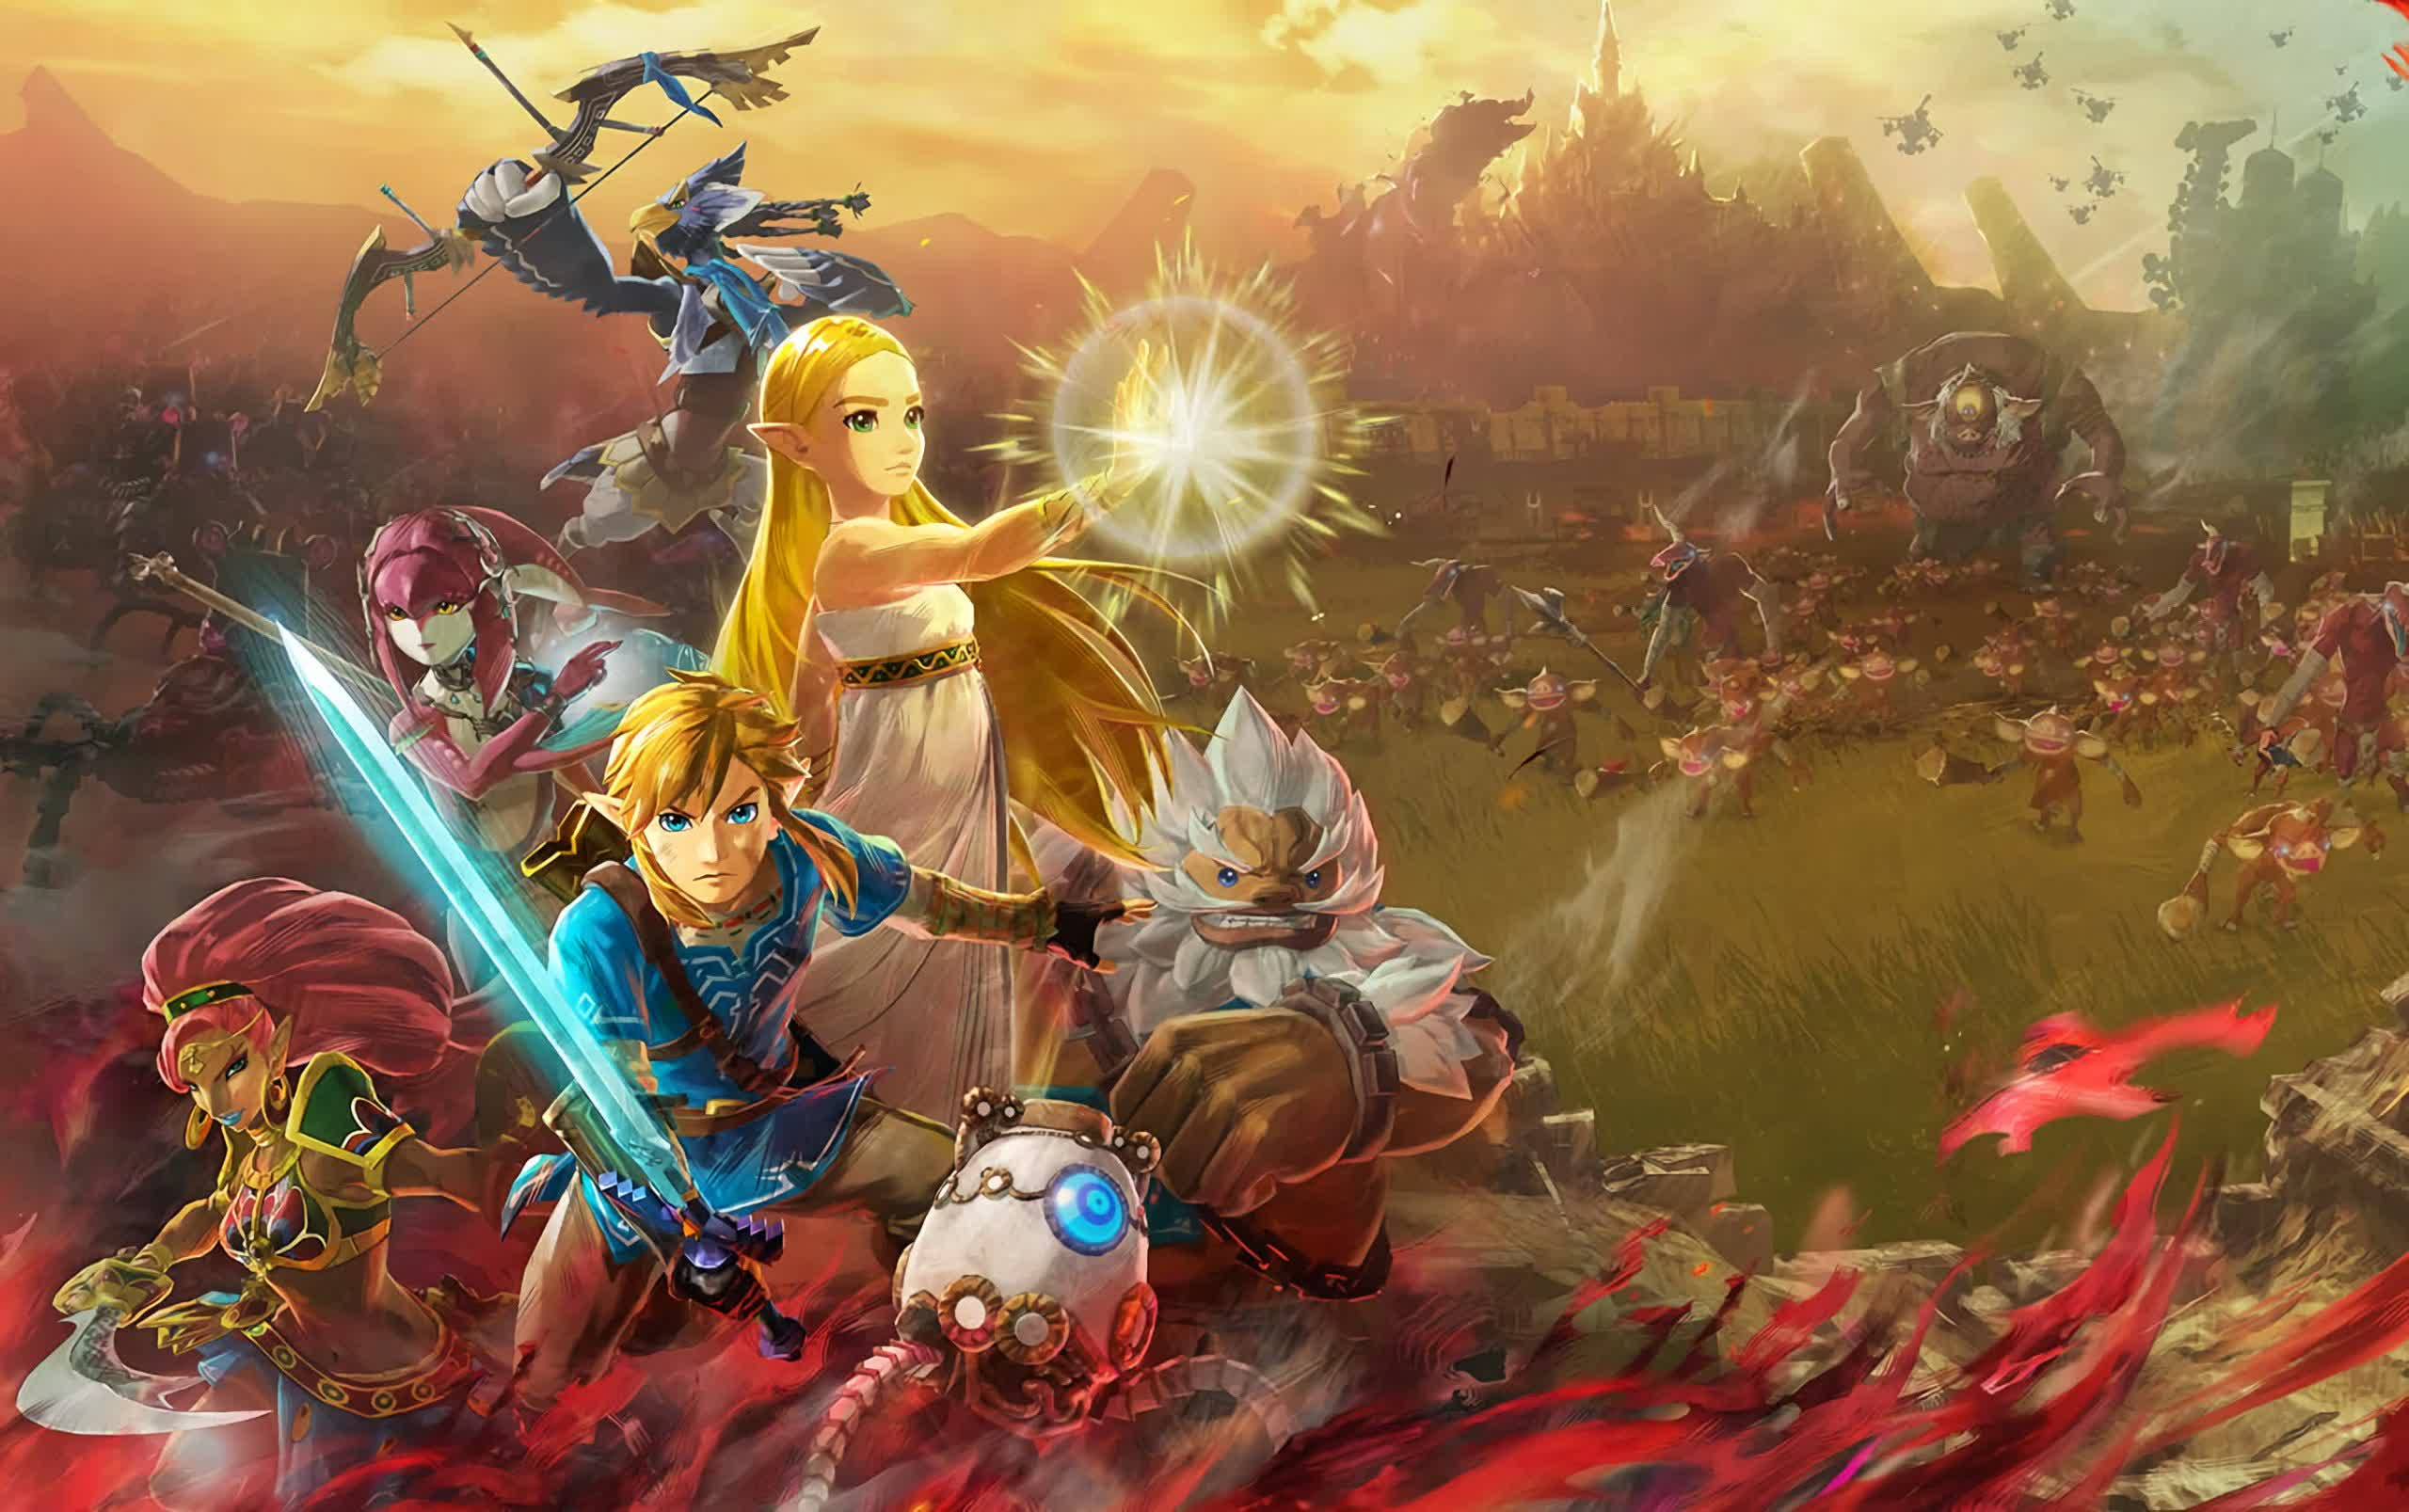 Nintendo surprise announcement pegs Hyrule Warriors: Age of Calamity for November release